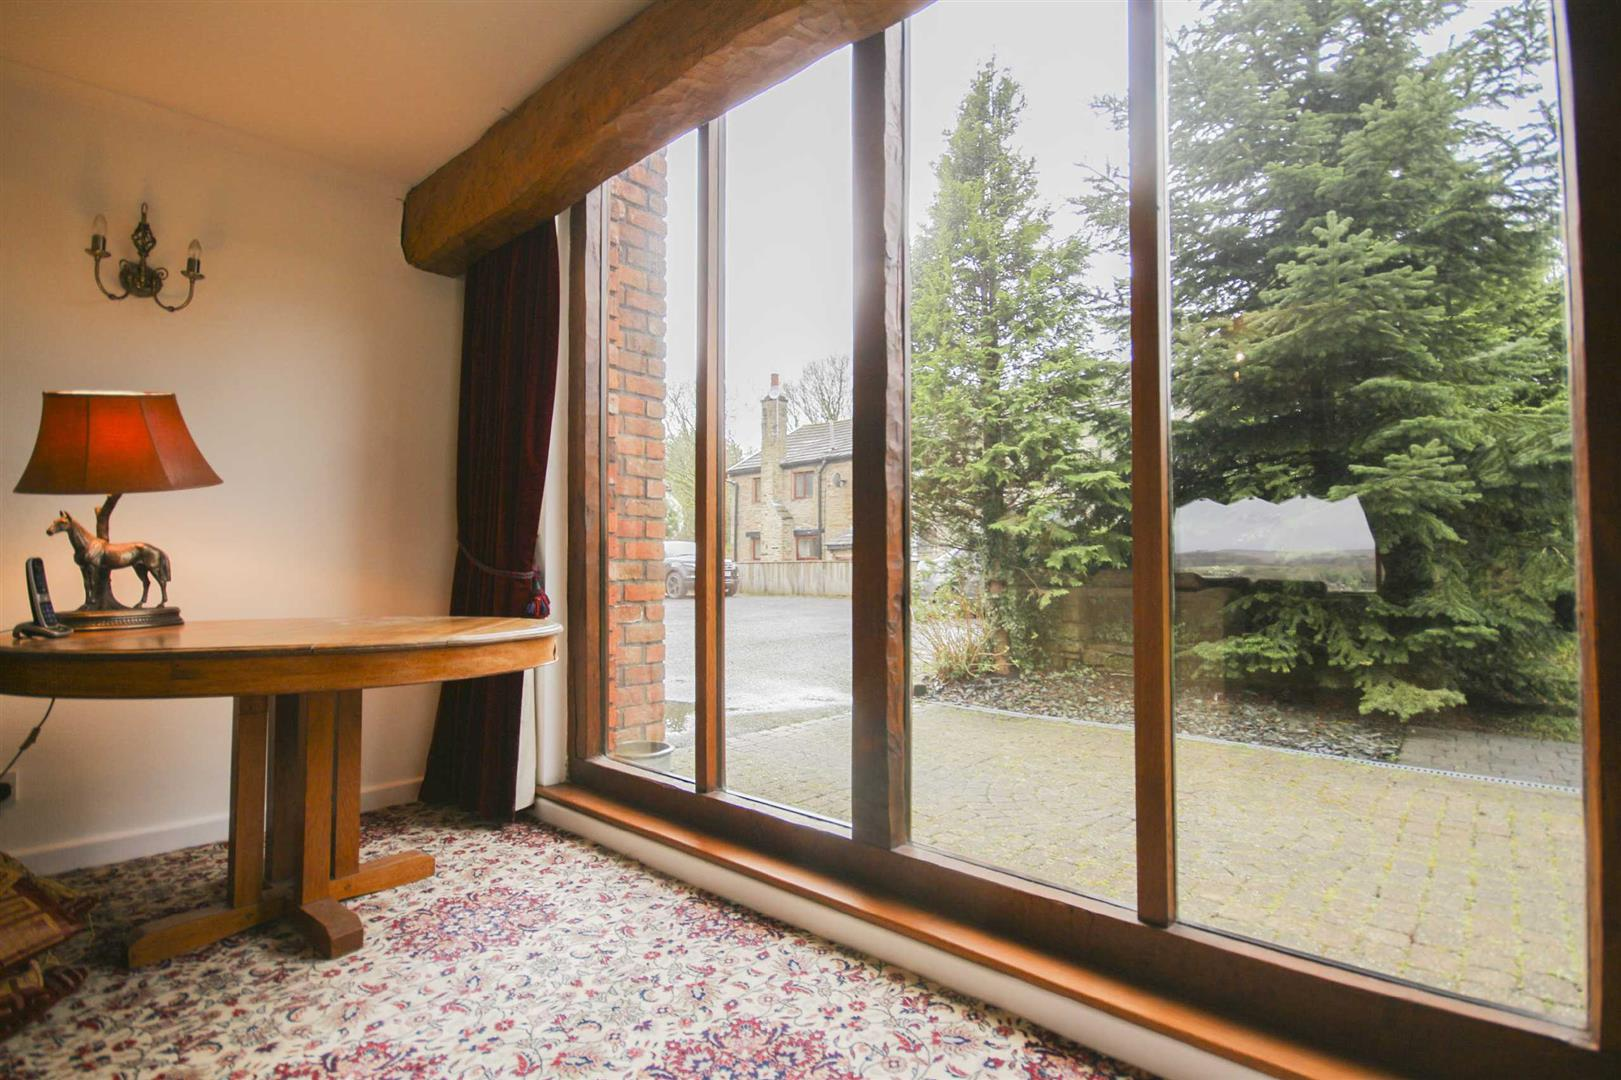 3 Bedroom Barn Conversion For Sale - Image 22